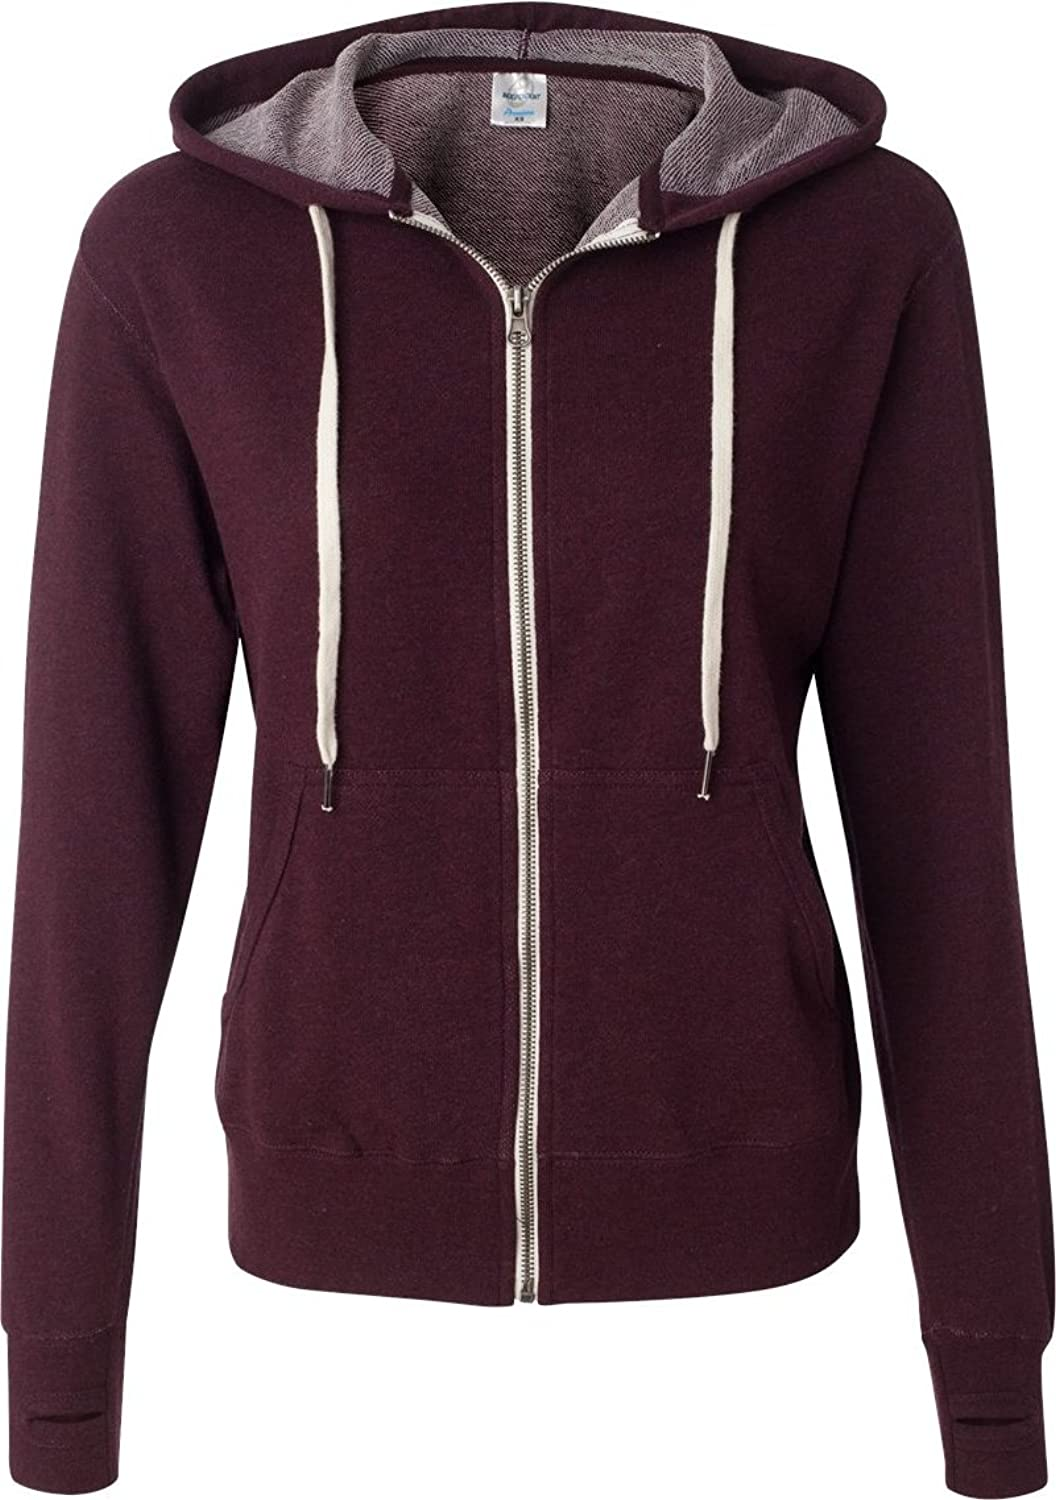 Independent Trading Co Mens French Terry Full Zip Hooded Sweatshirt. PRM90HTZ XLarge Burgundy Heather